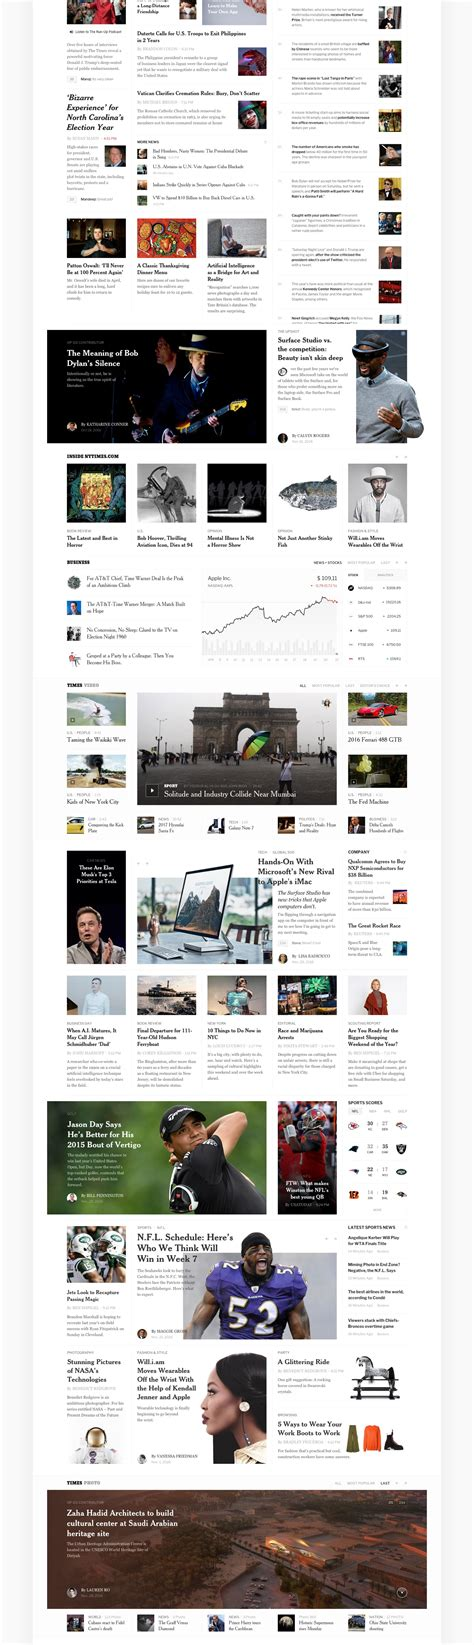 design editor new york times editorial design the new york times redesign concept